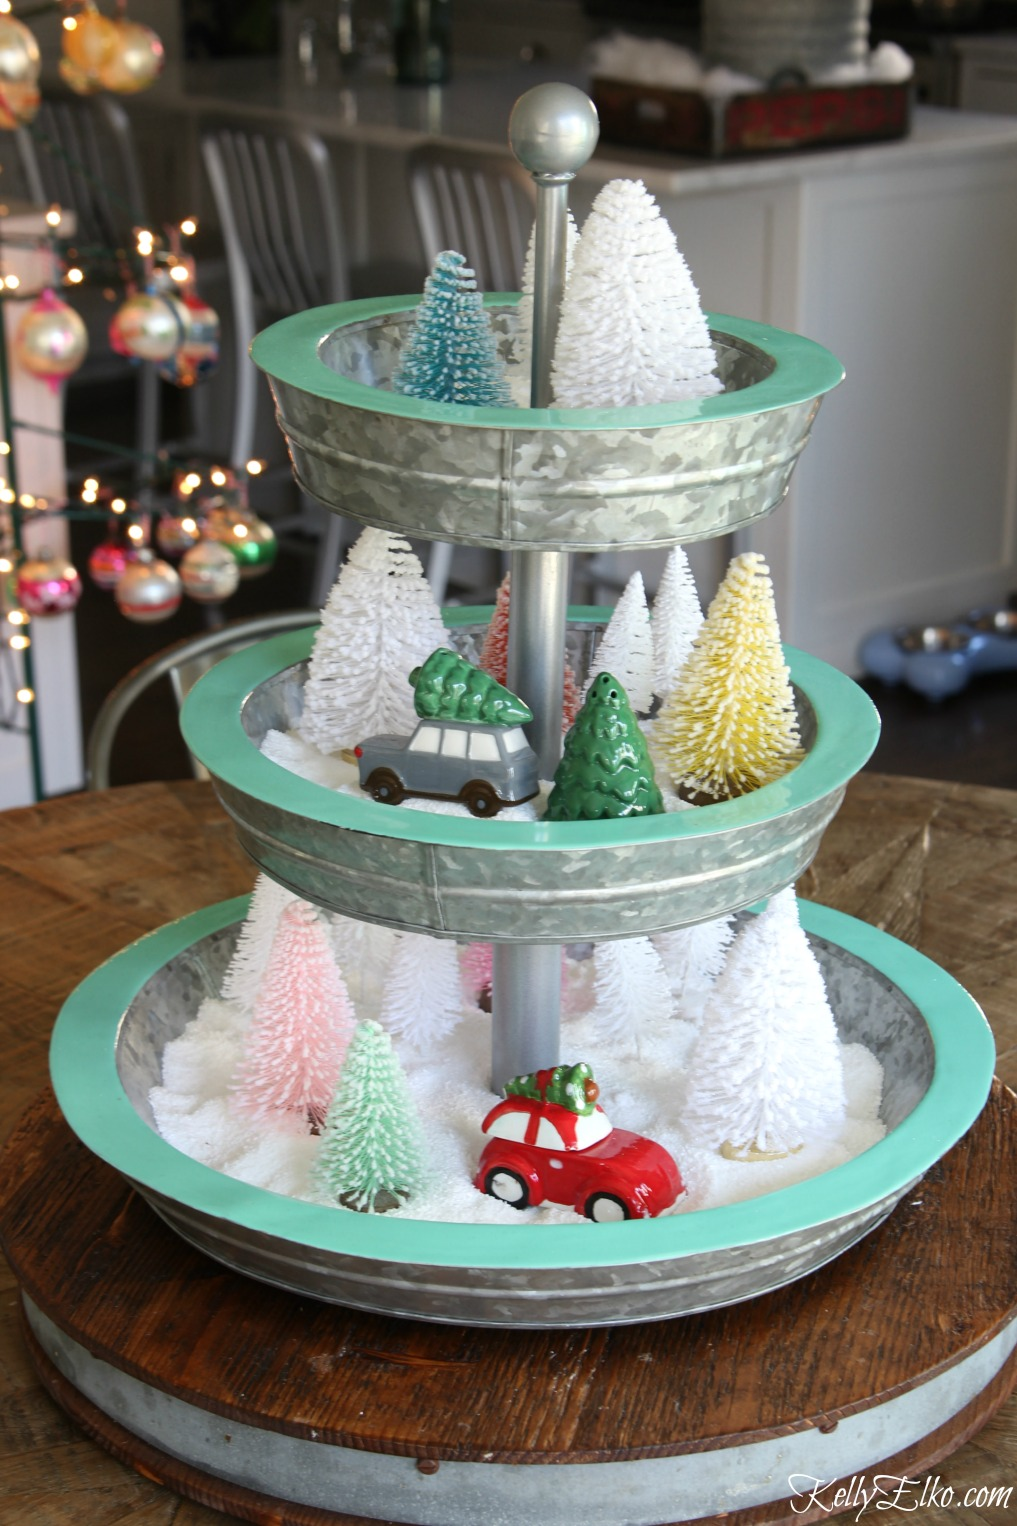 Love this tiered tray filled with bottle brush trees and snow kellyelko.com